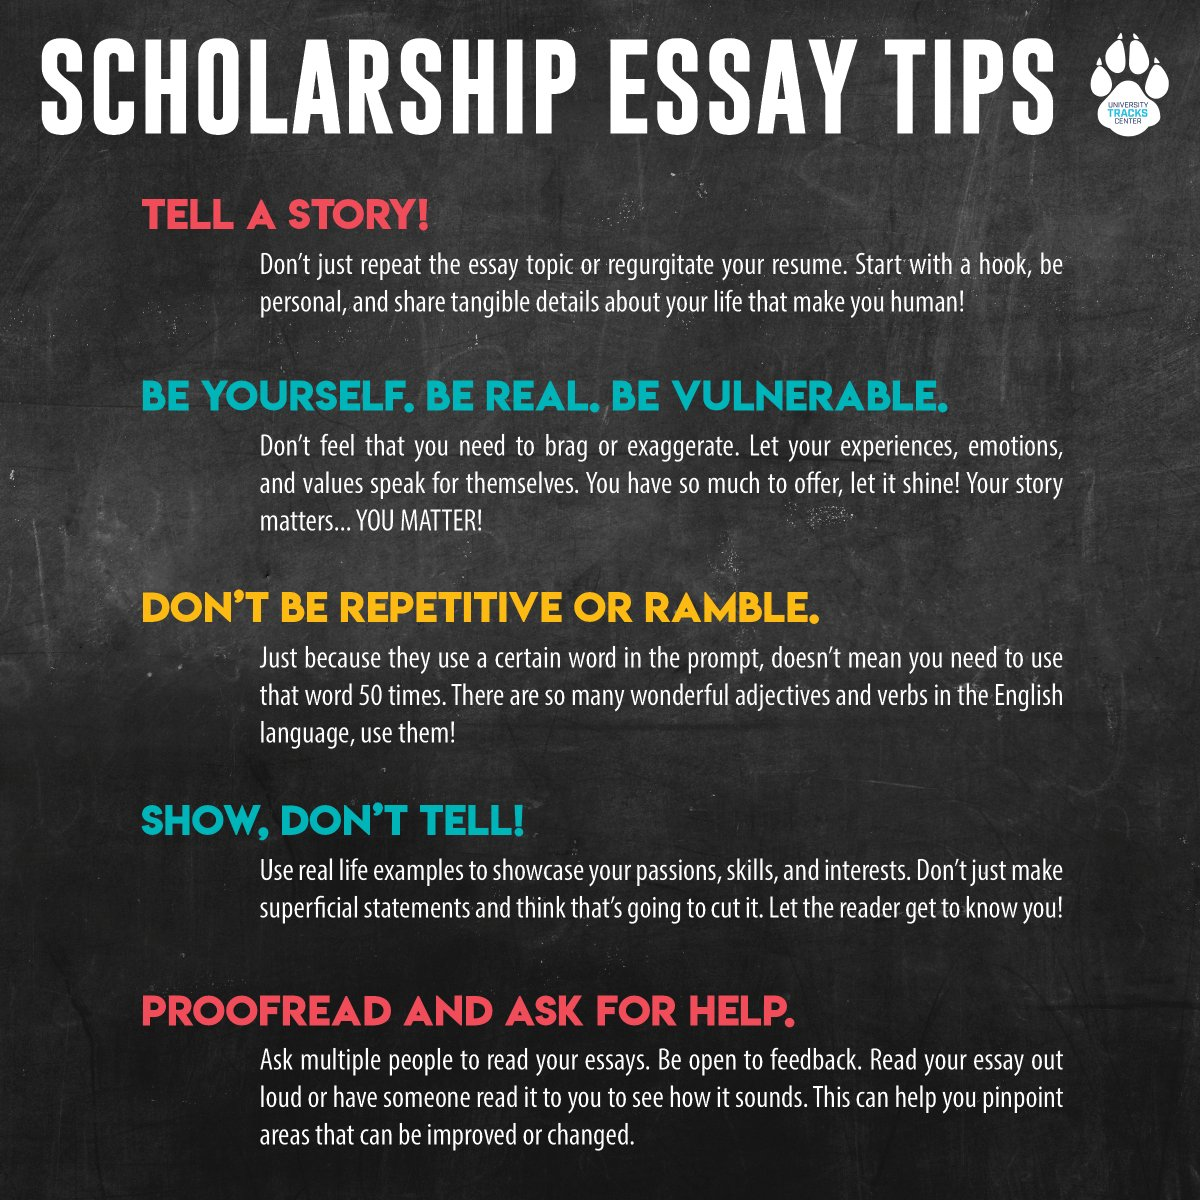 Here are a few tips to consider as you're working on your scholarship essays! #scholarships #district60 #utc #district60utc #pueblo #essay